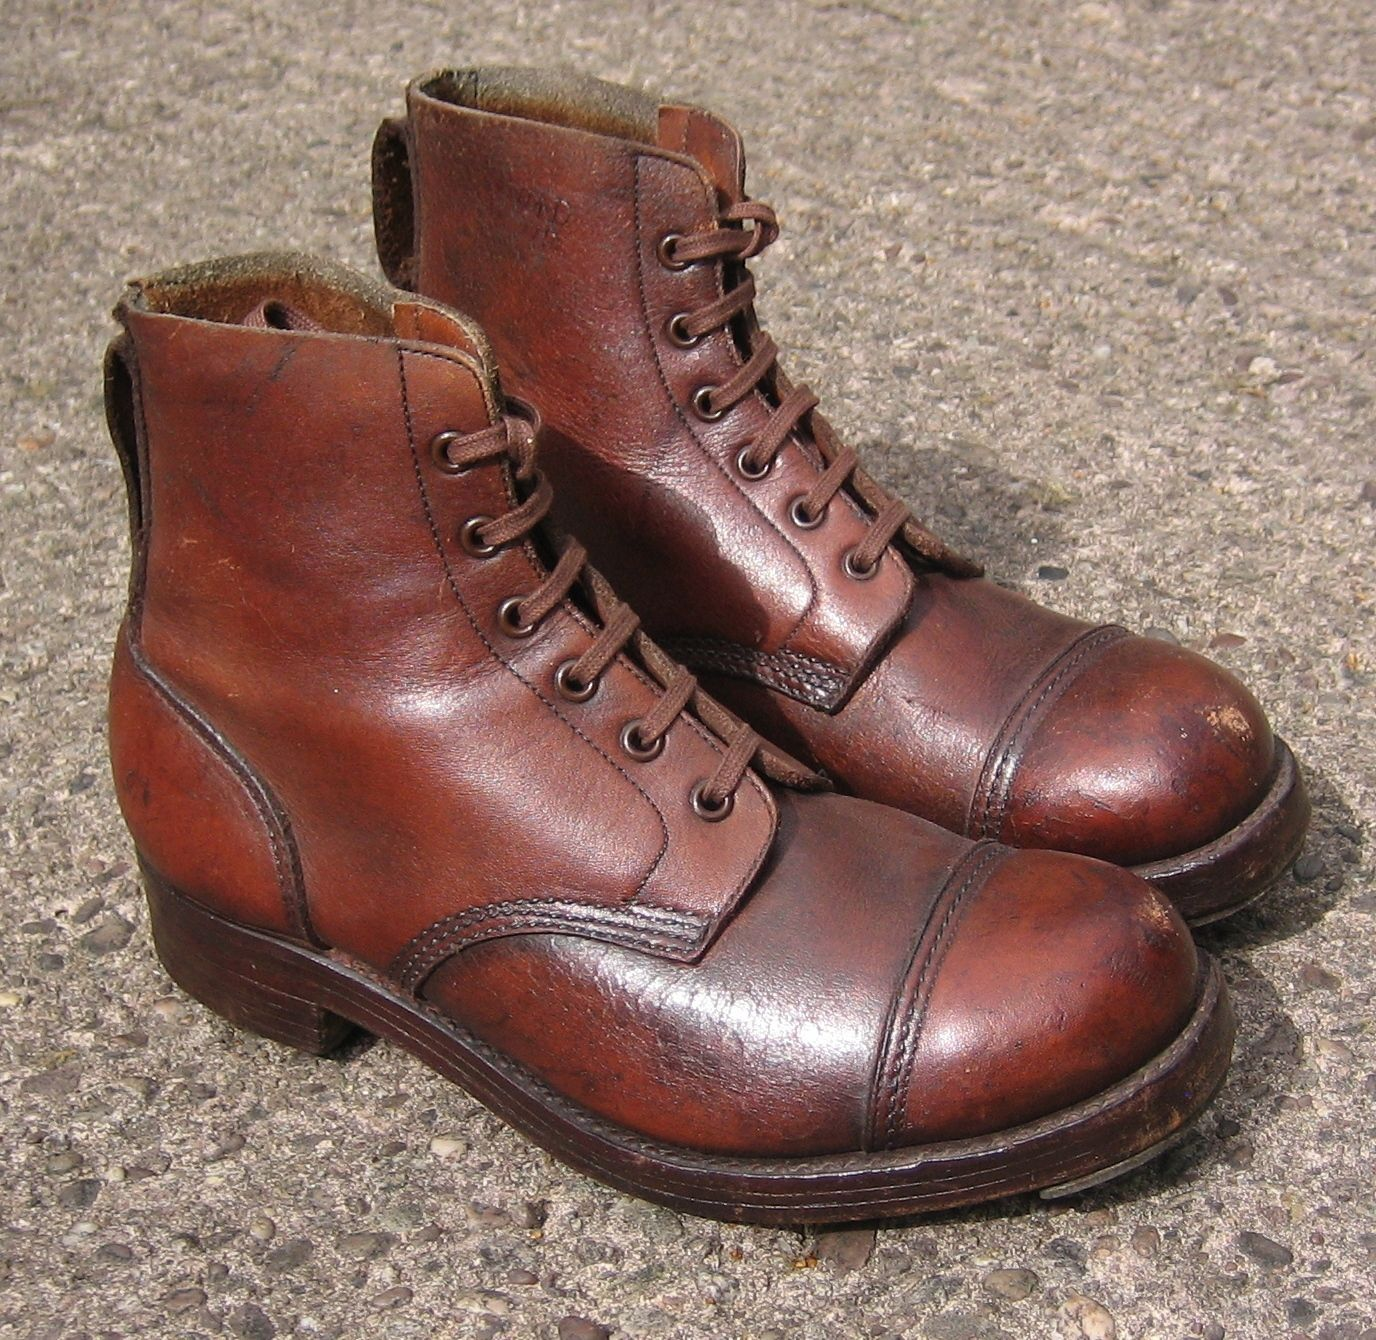 Vintage ww2 #british army brown leather jungle boots, 7l, ankle #william #lennon,  View more on the LINK: http://www.zeppy.io/product/gb/2/201667237141/